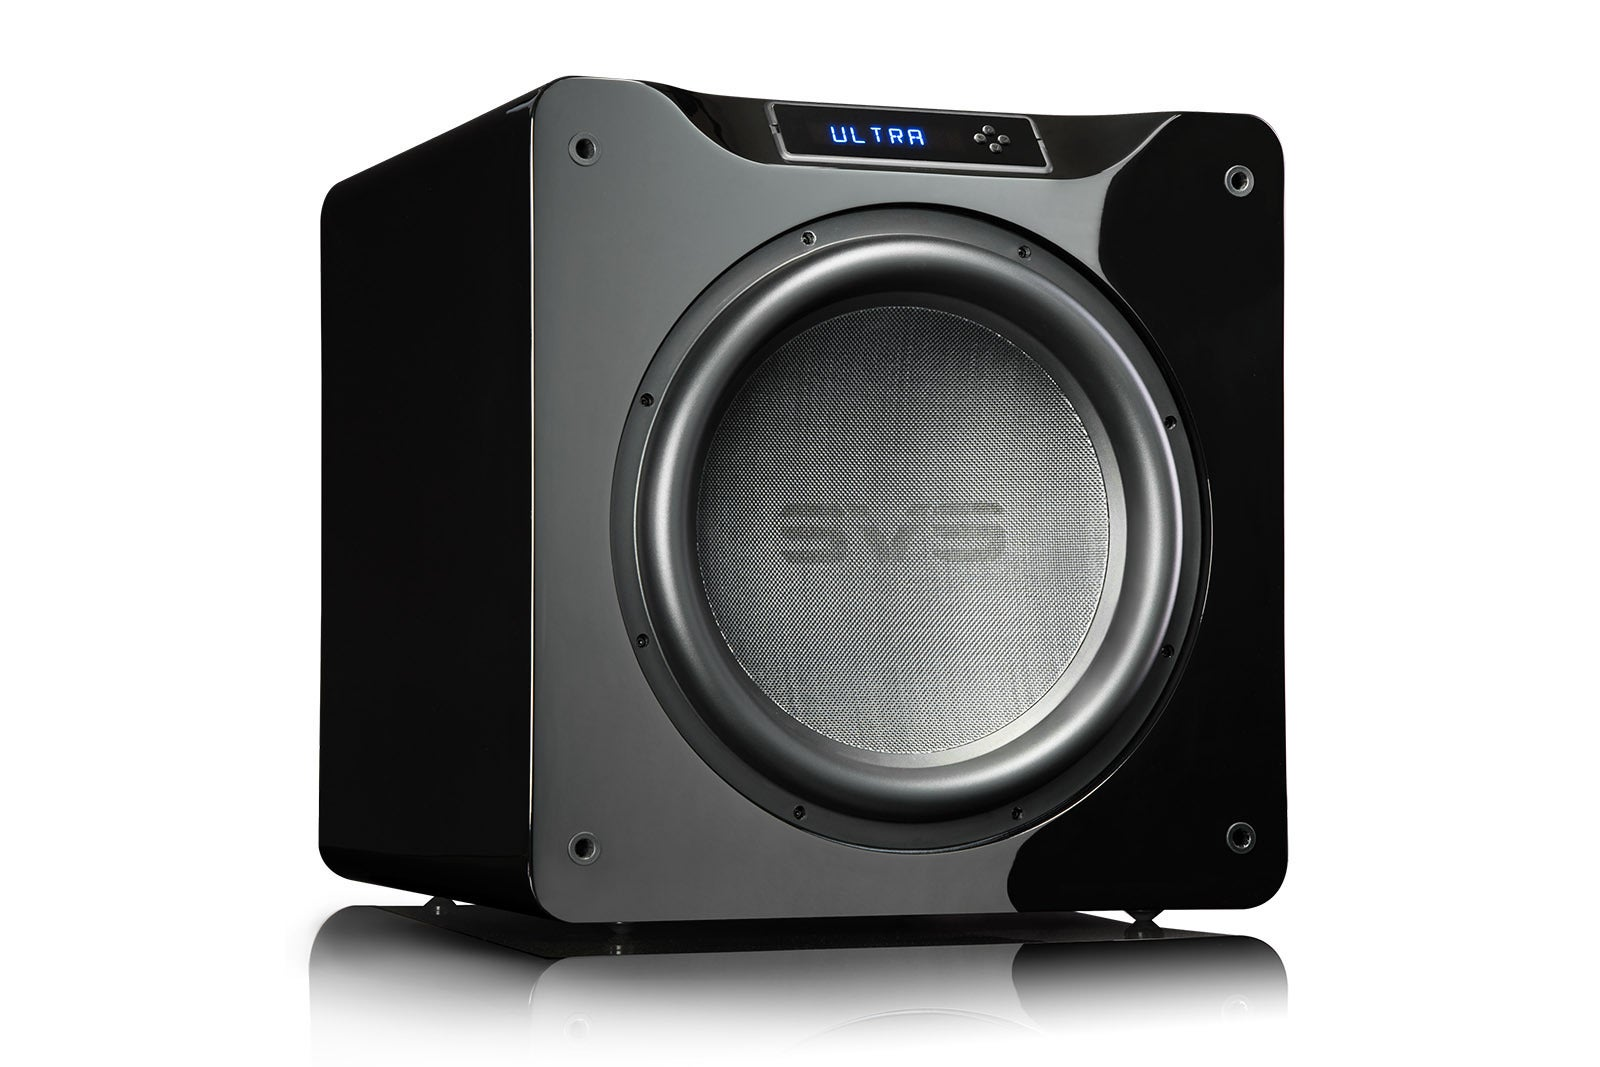 Svs Sb16 Ultra Subwoofer Revew This Speaker Will Rock Your House Circuit For You Take It To Apply With Sound System Or Techhive